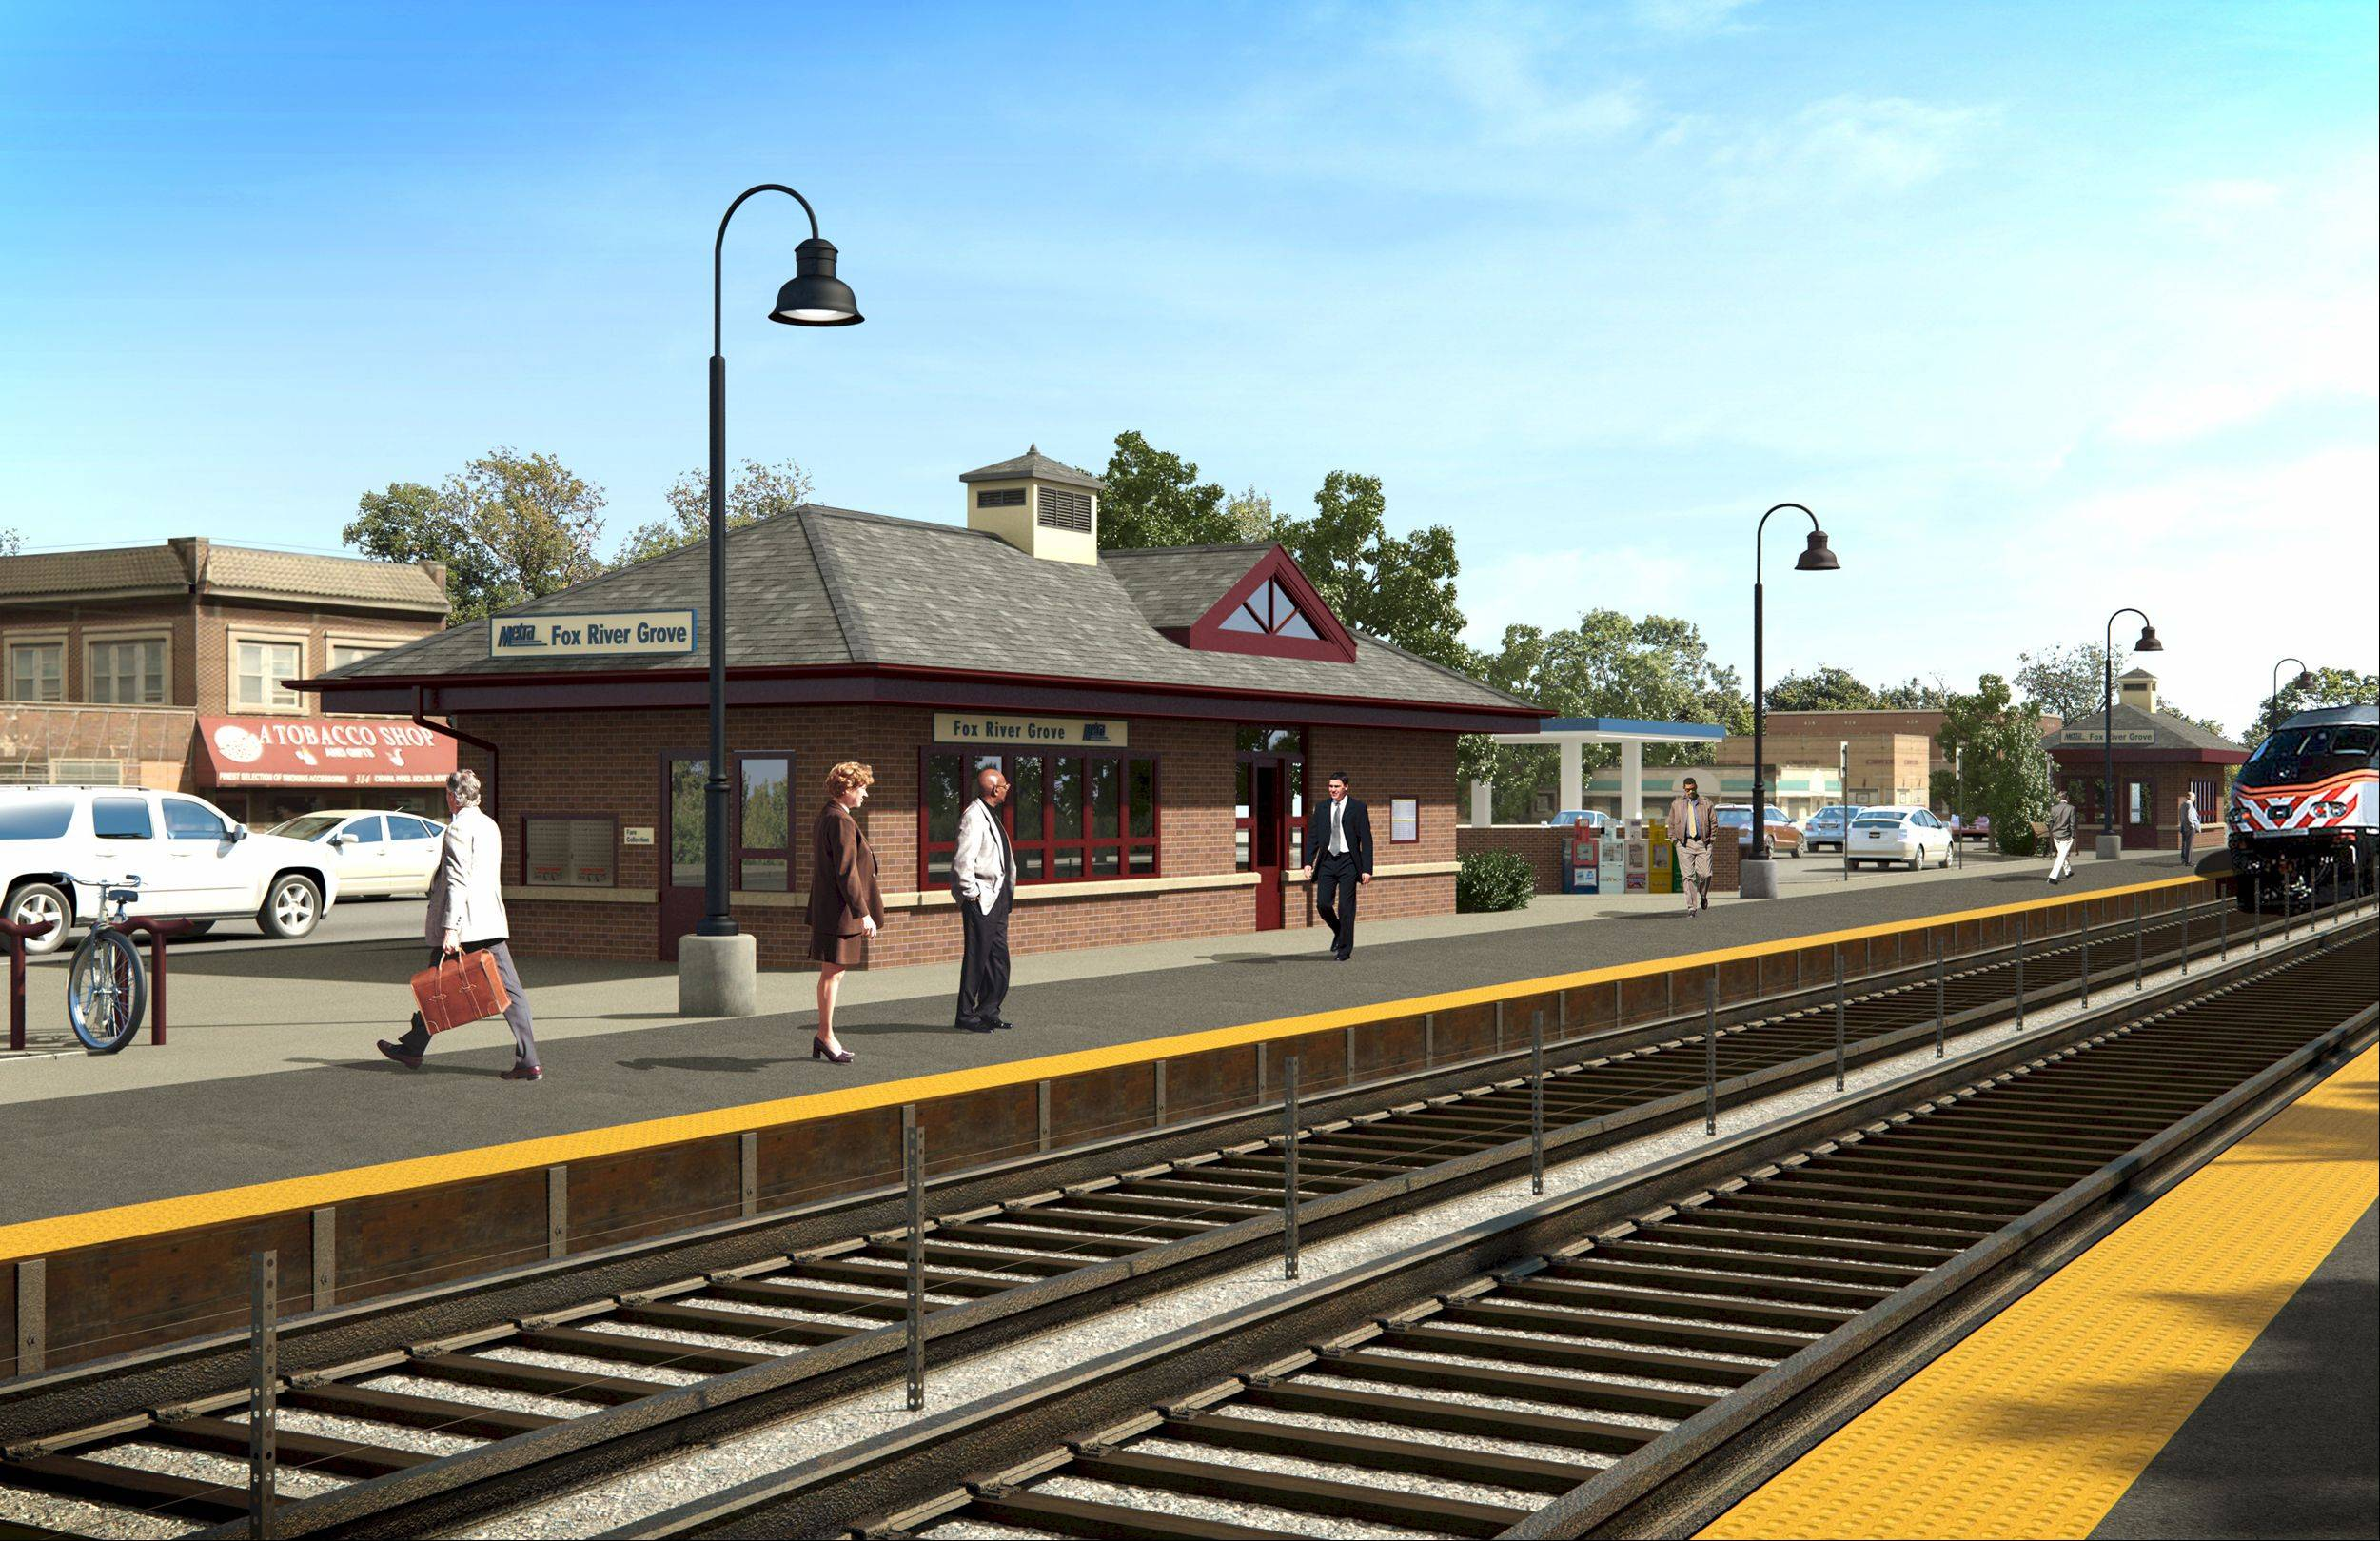 An artist's rendering shows how the new Metra station in Fox River Grove will look. Construction on the station itself is slated to begin around Sept. 1. Work has already started on extending the platforms.